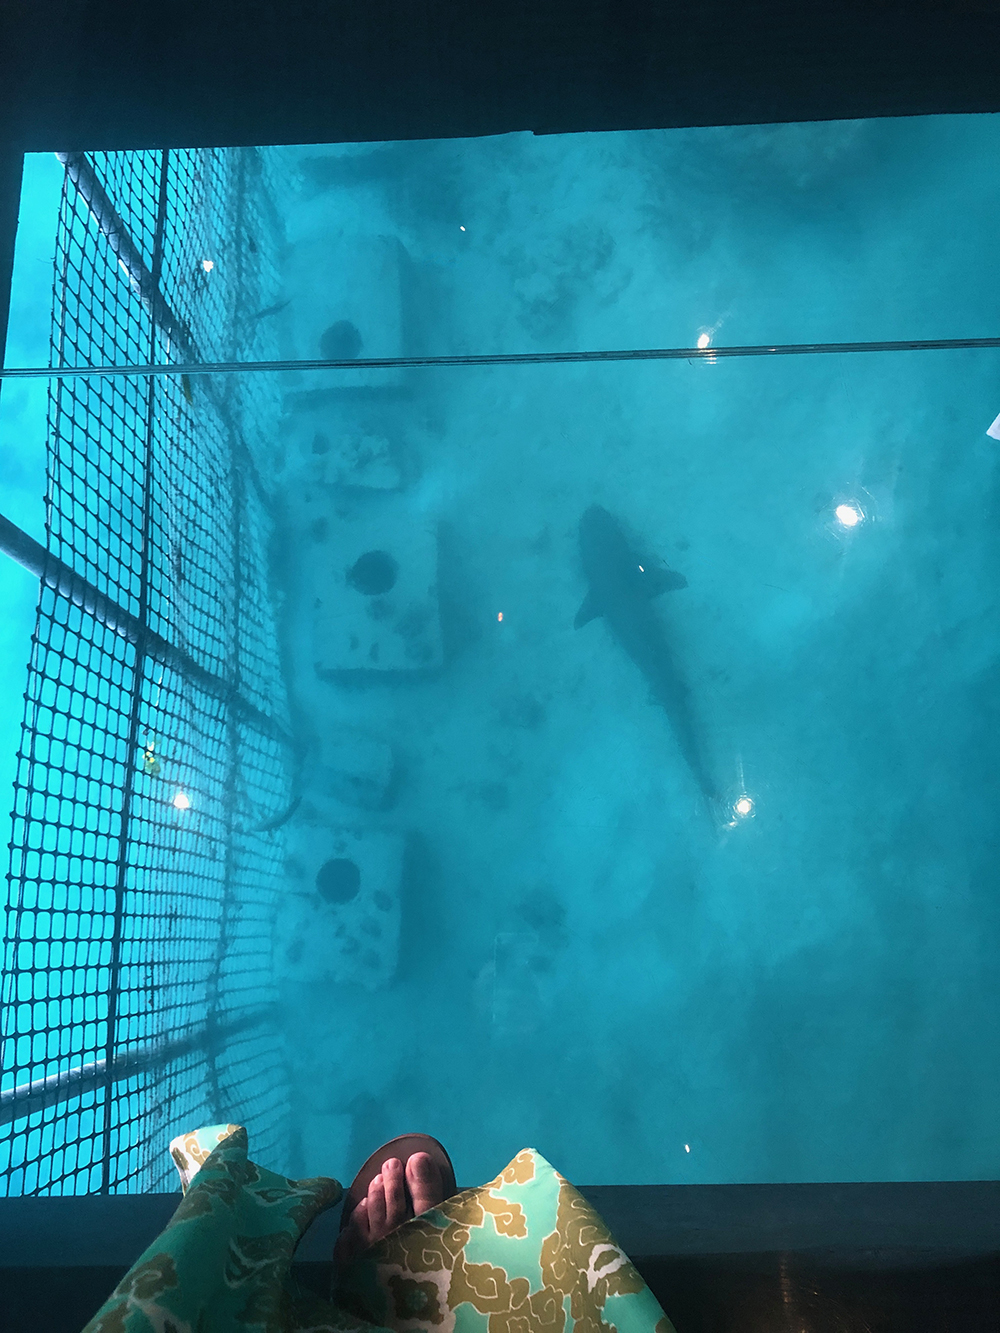 Watch the sharks and sea life swim beneath glass panels in the restaurant's floor.